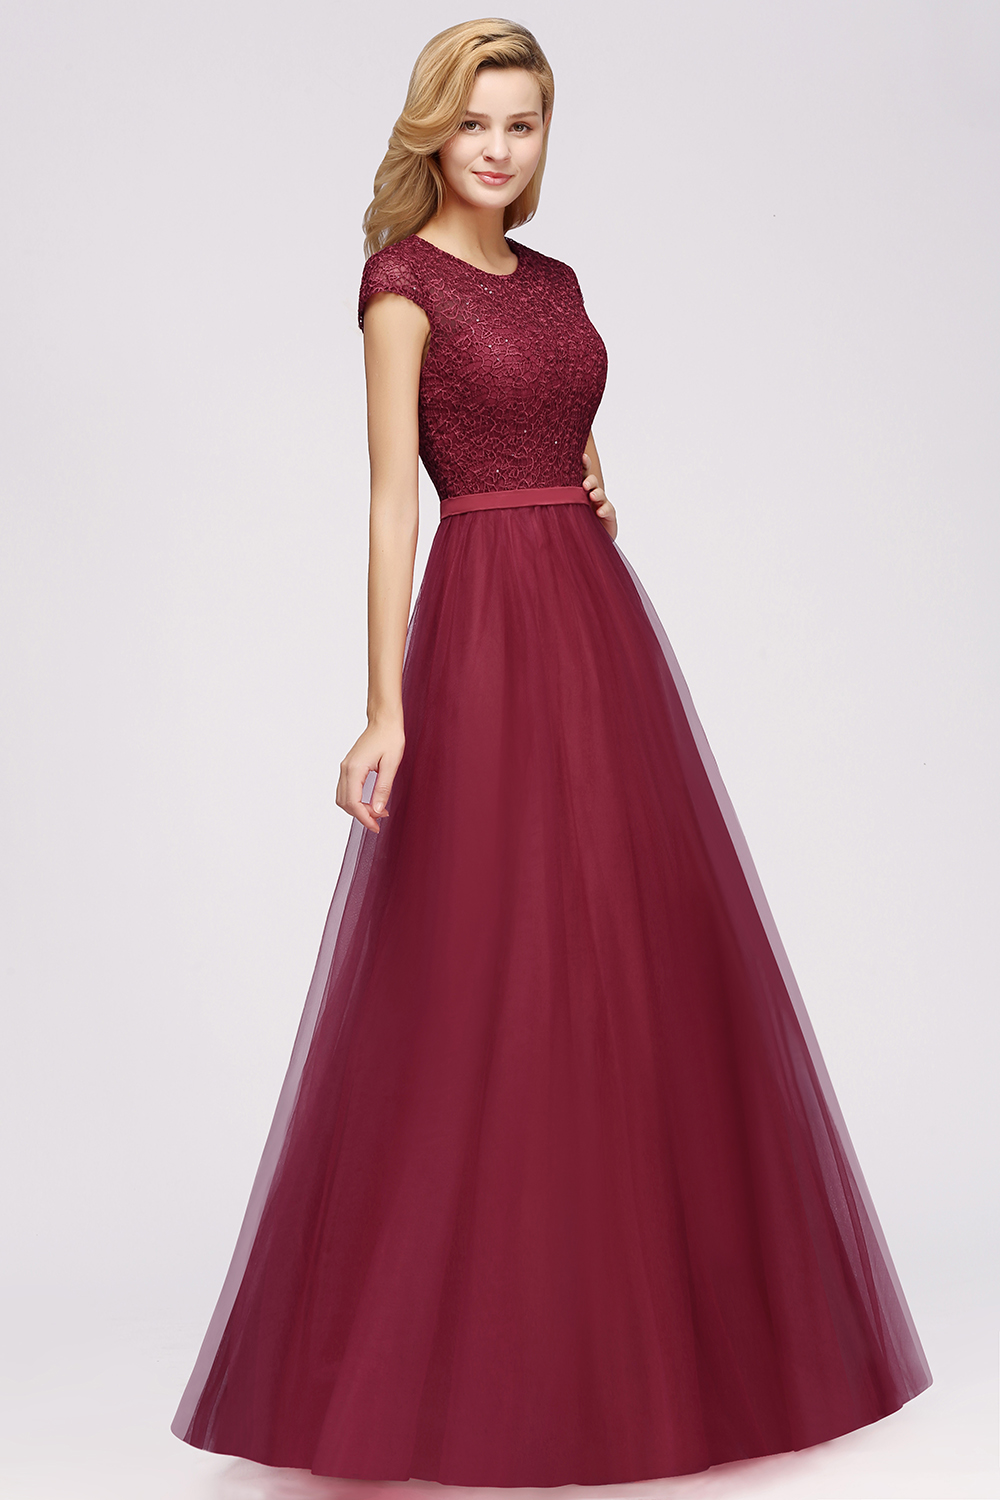 Xunbei Bridesmaid Dresses 2020 Elegant Long Burgundy Tulle Wedding Party Guest Gown 2019 Cheap Sleeveless vestido madrinha